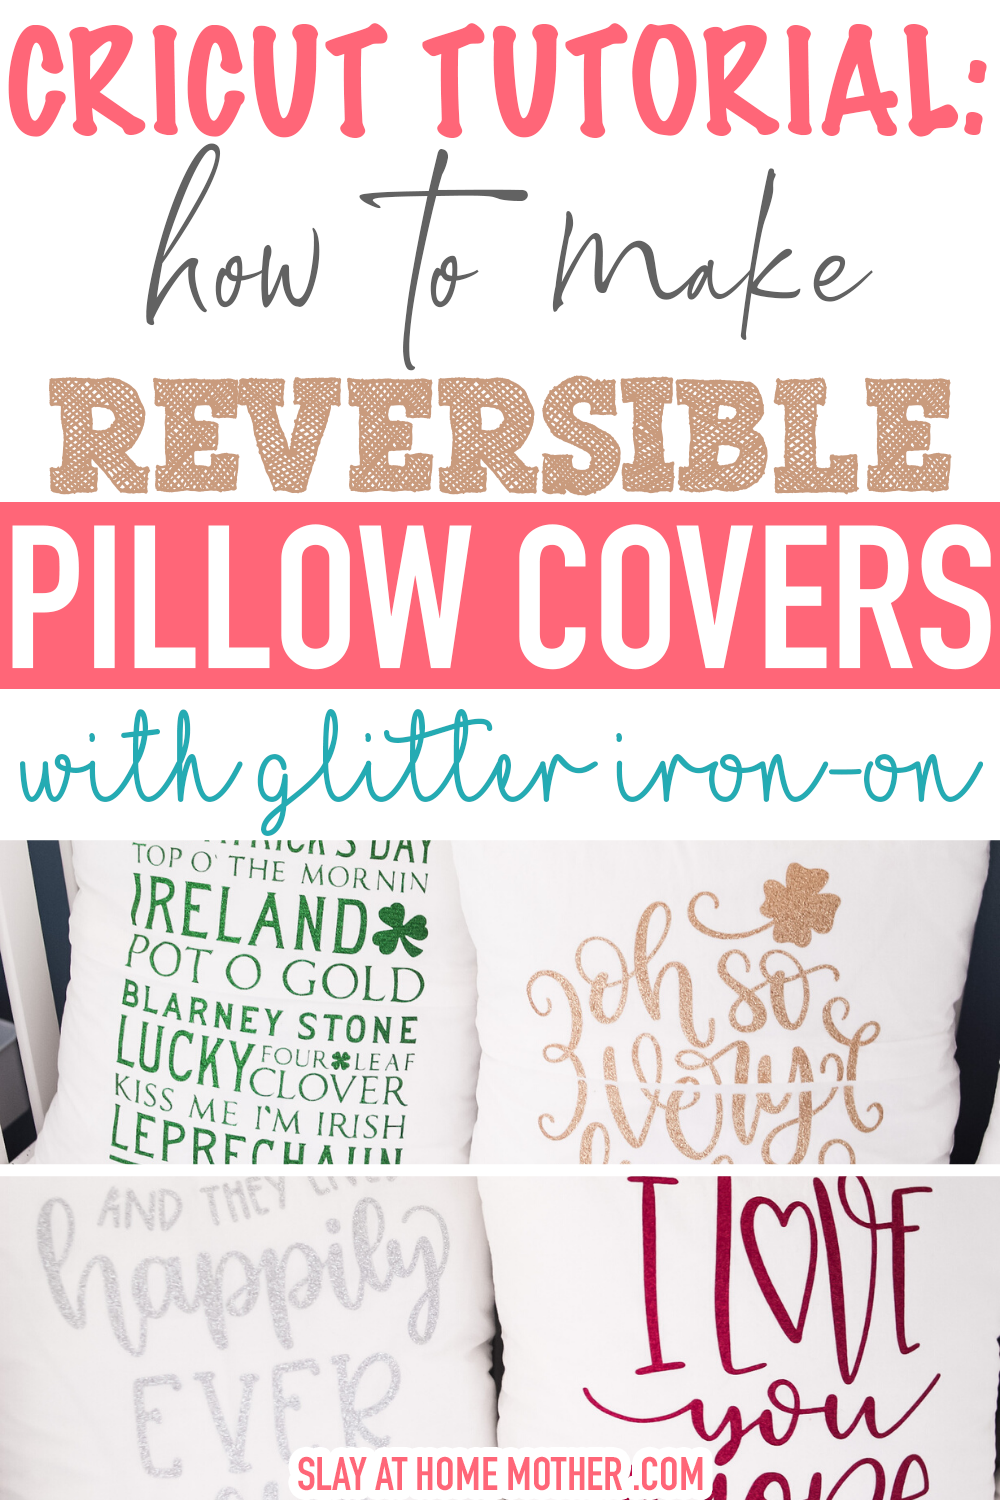 How To Work With Cricut Glitter Iron-On cricut glitter iron on - reversible pillow covers project